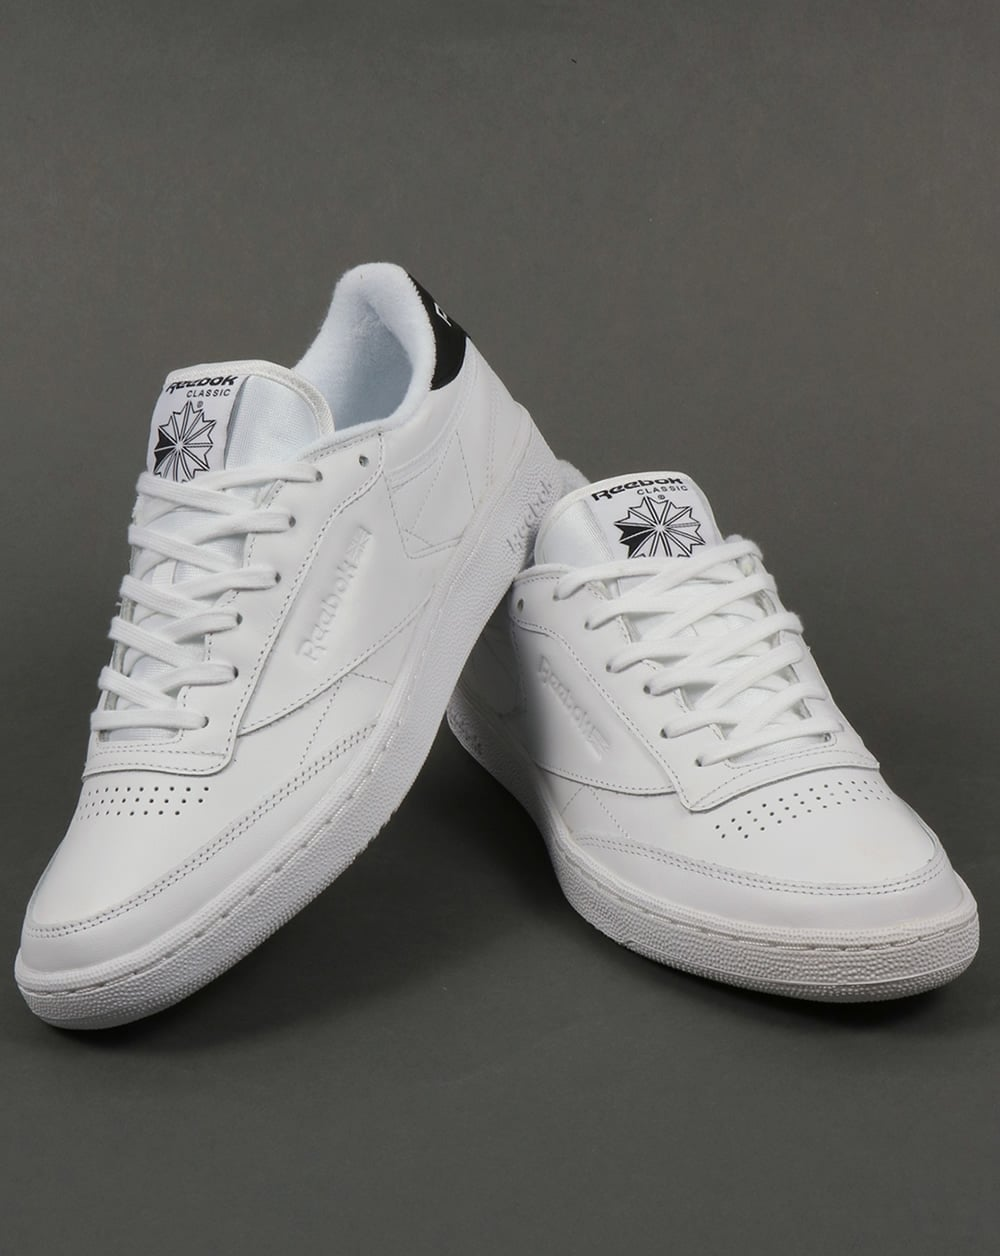 c4cc10938f9 Reebok Club C 85 Retro Trainers White Black